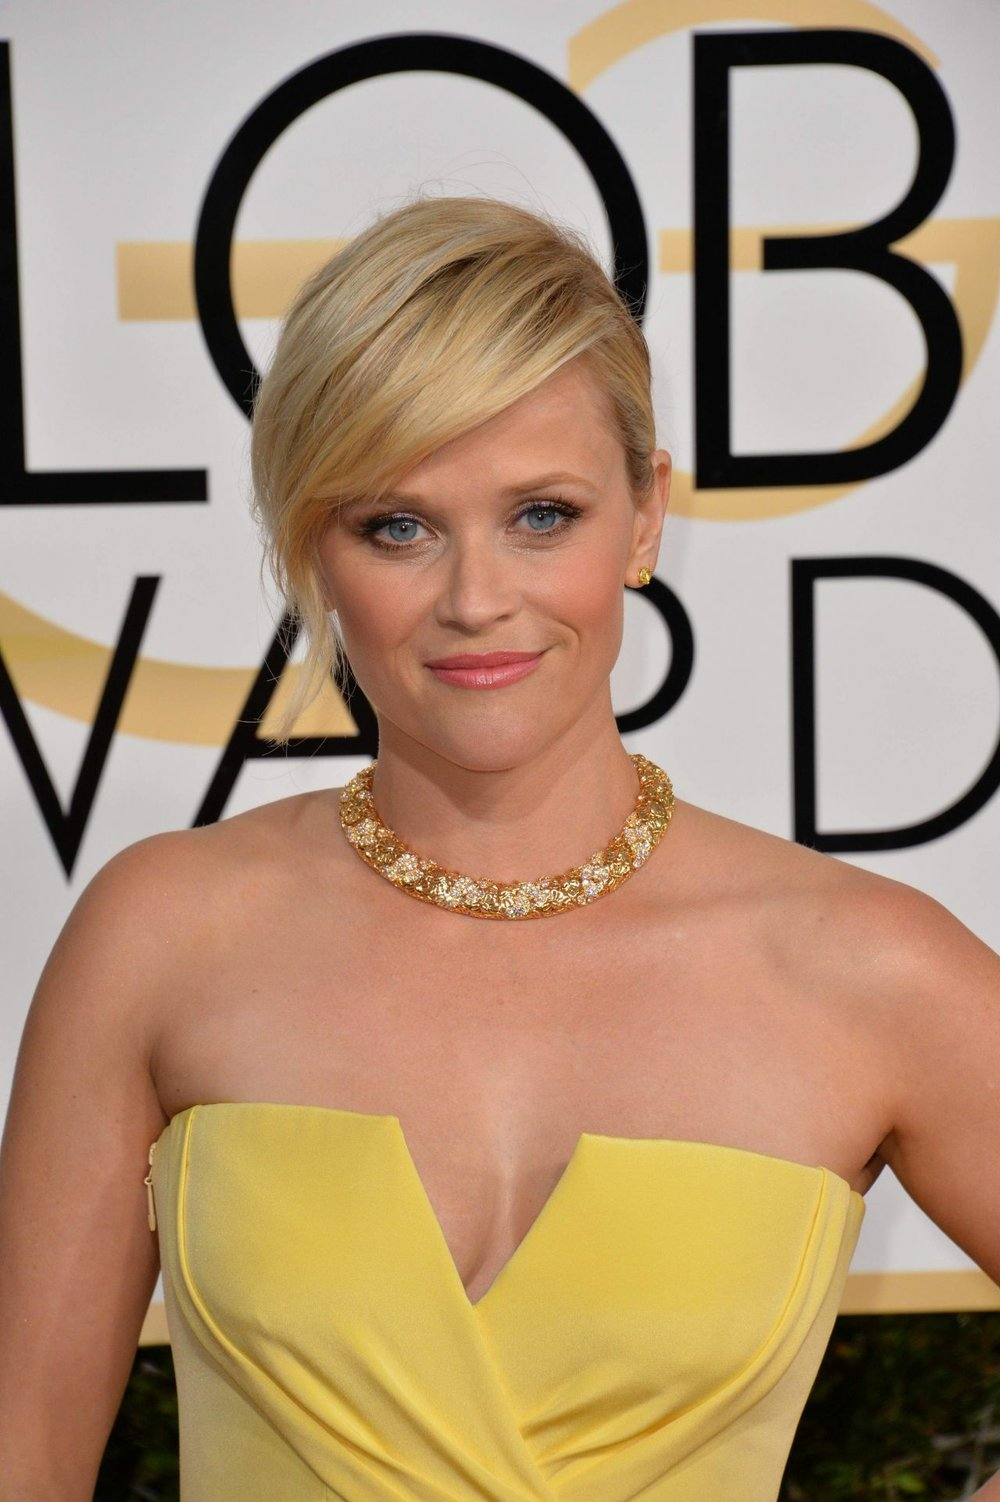 Reese Witherspoon in Tiffany & Co.